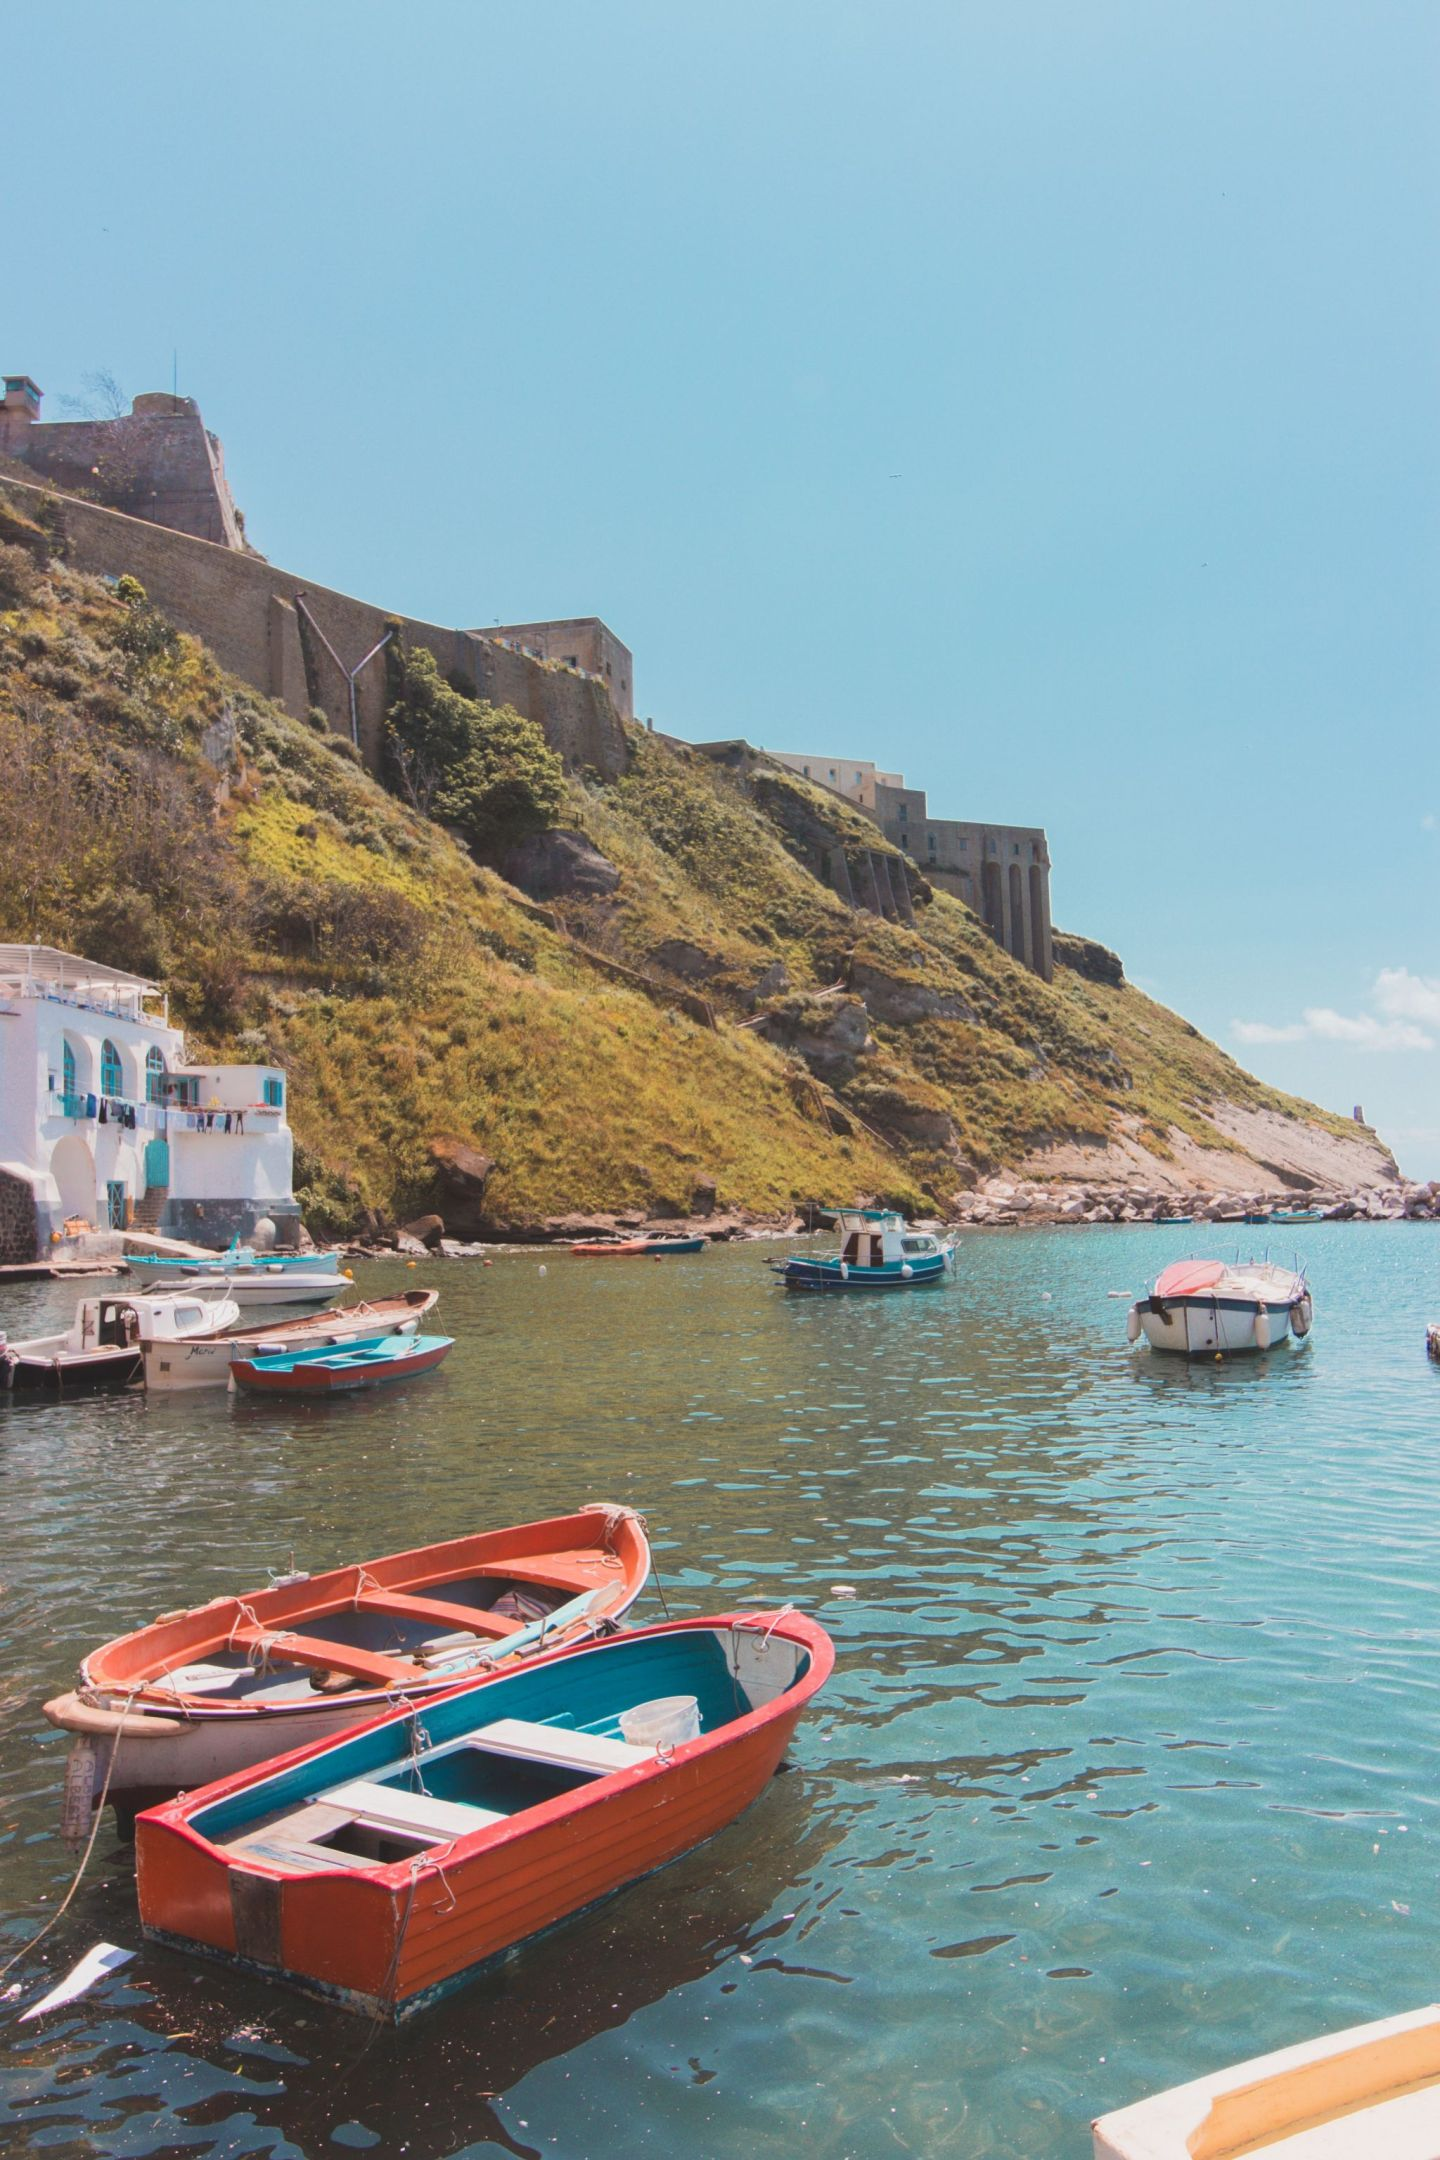 View to the old prison from the beach in Procida